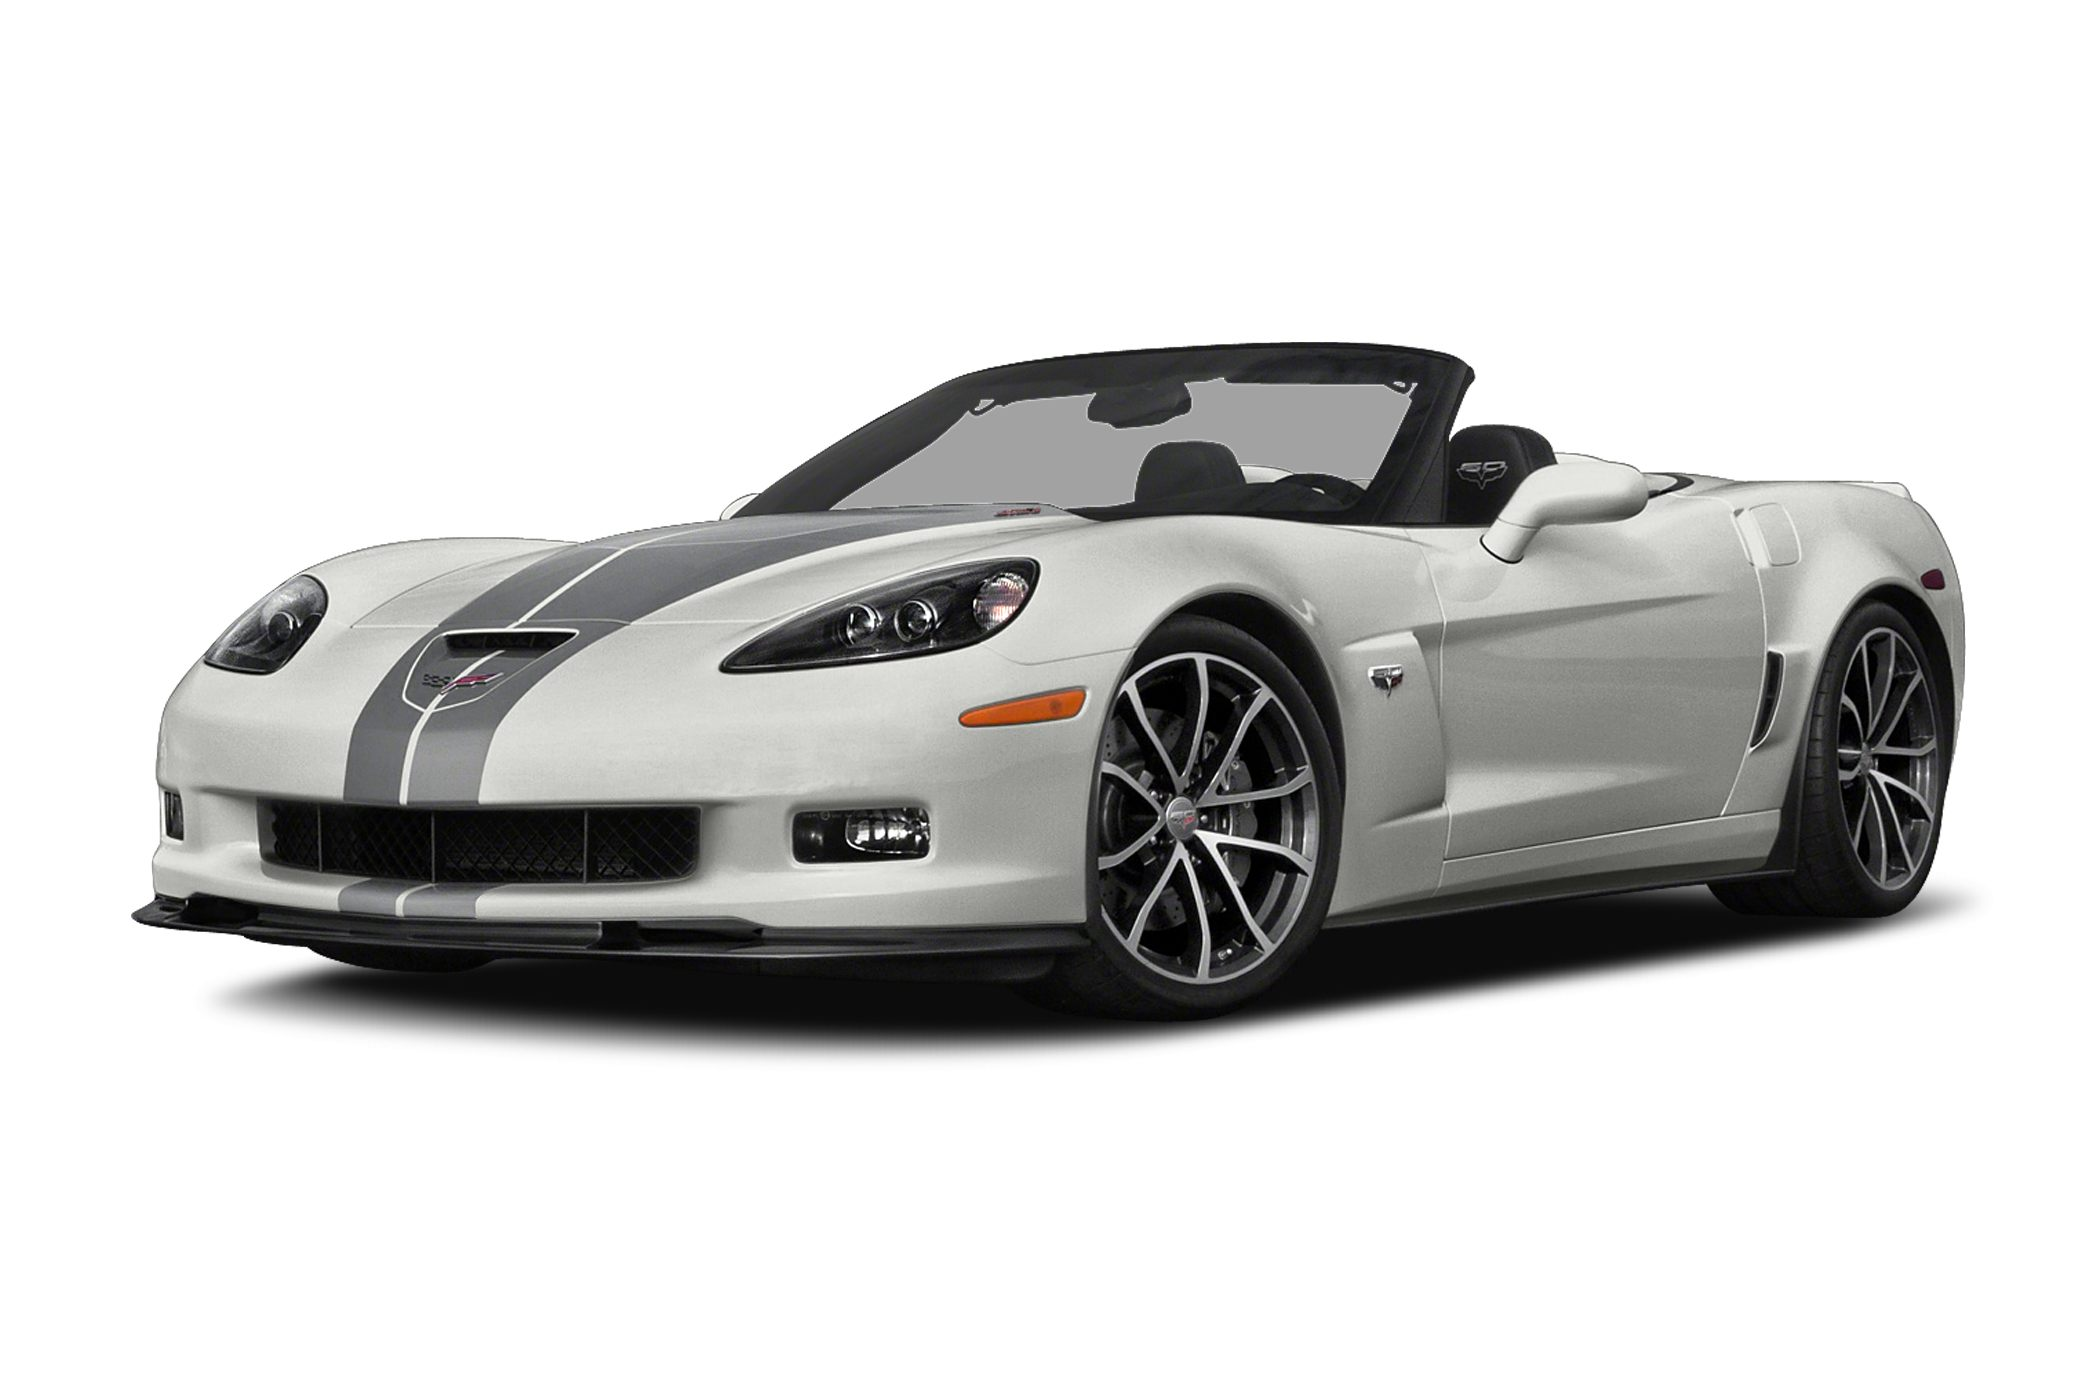 2013 Chevrolet Corvette 427 Convertible for sale in Fredericksburg for $66,590 with 2,673 miles